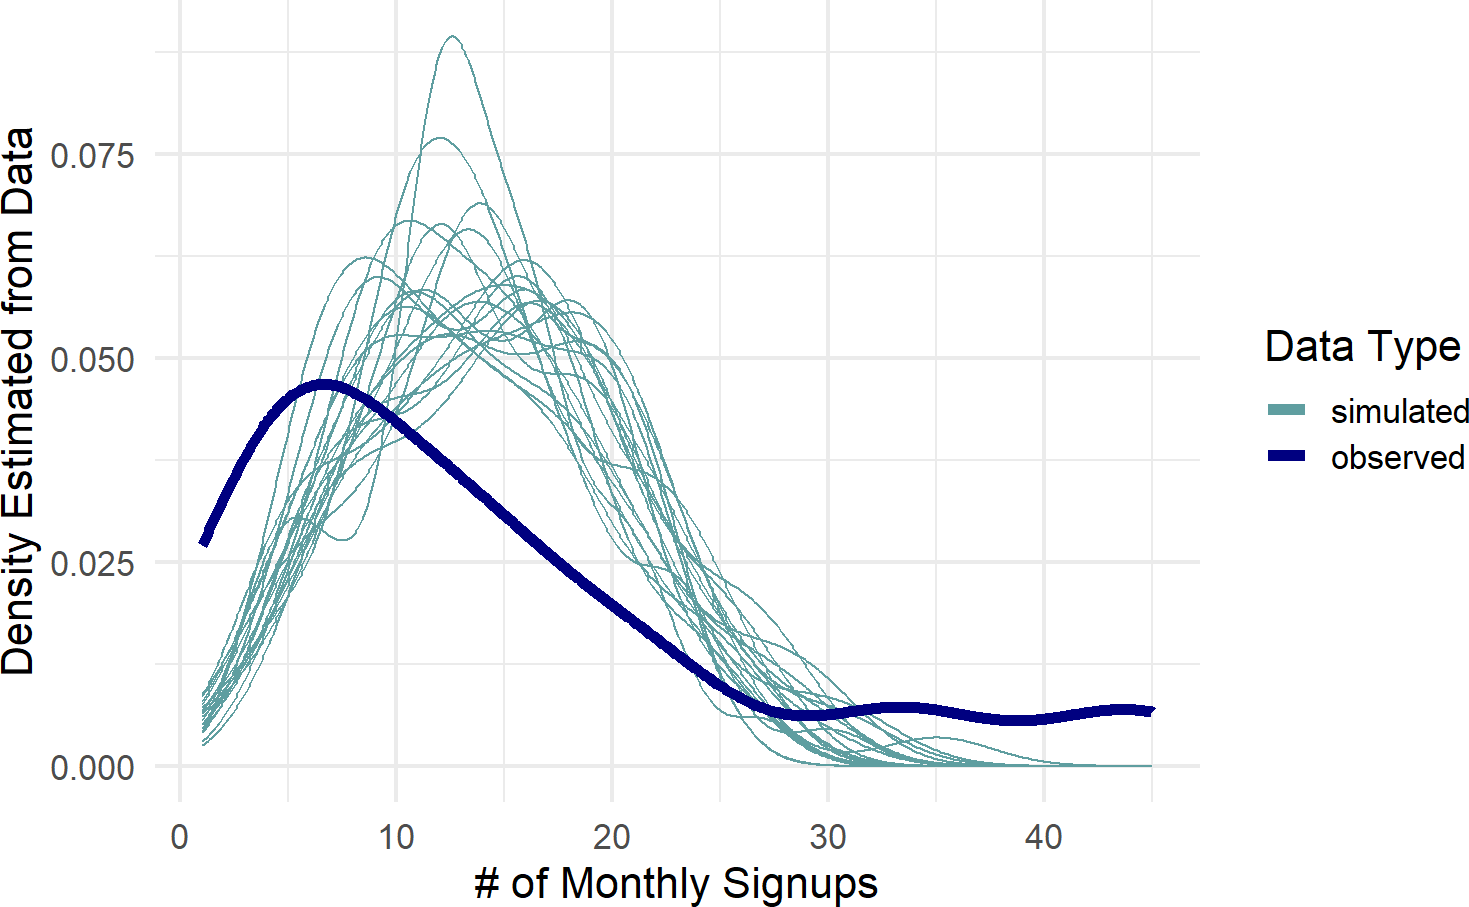 Posterior predictive check to see if model is capable of capturing the variability inherent in the observed data.